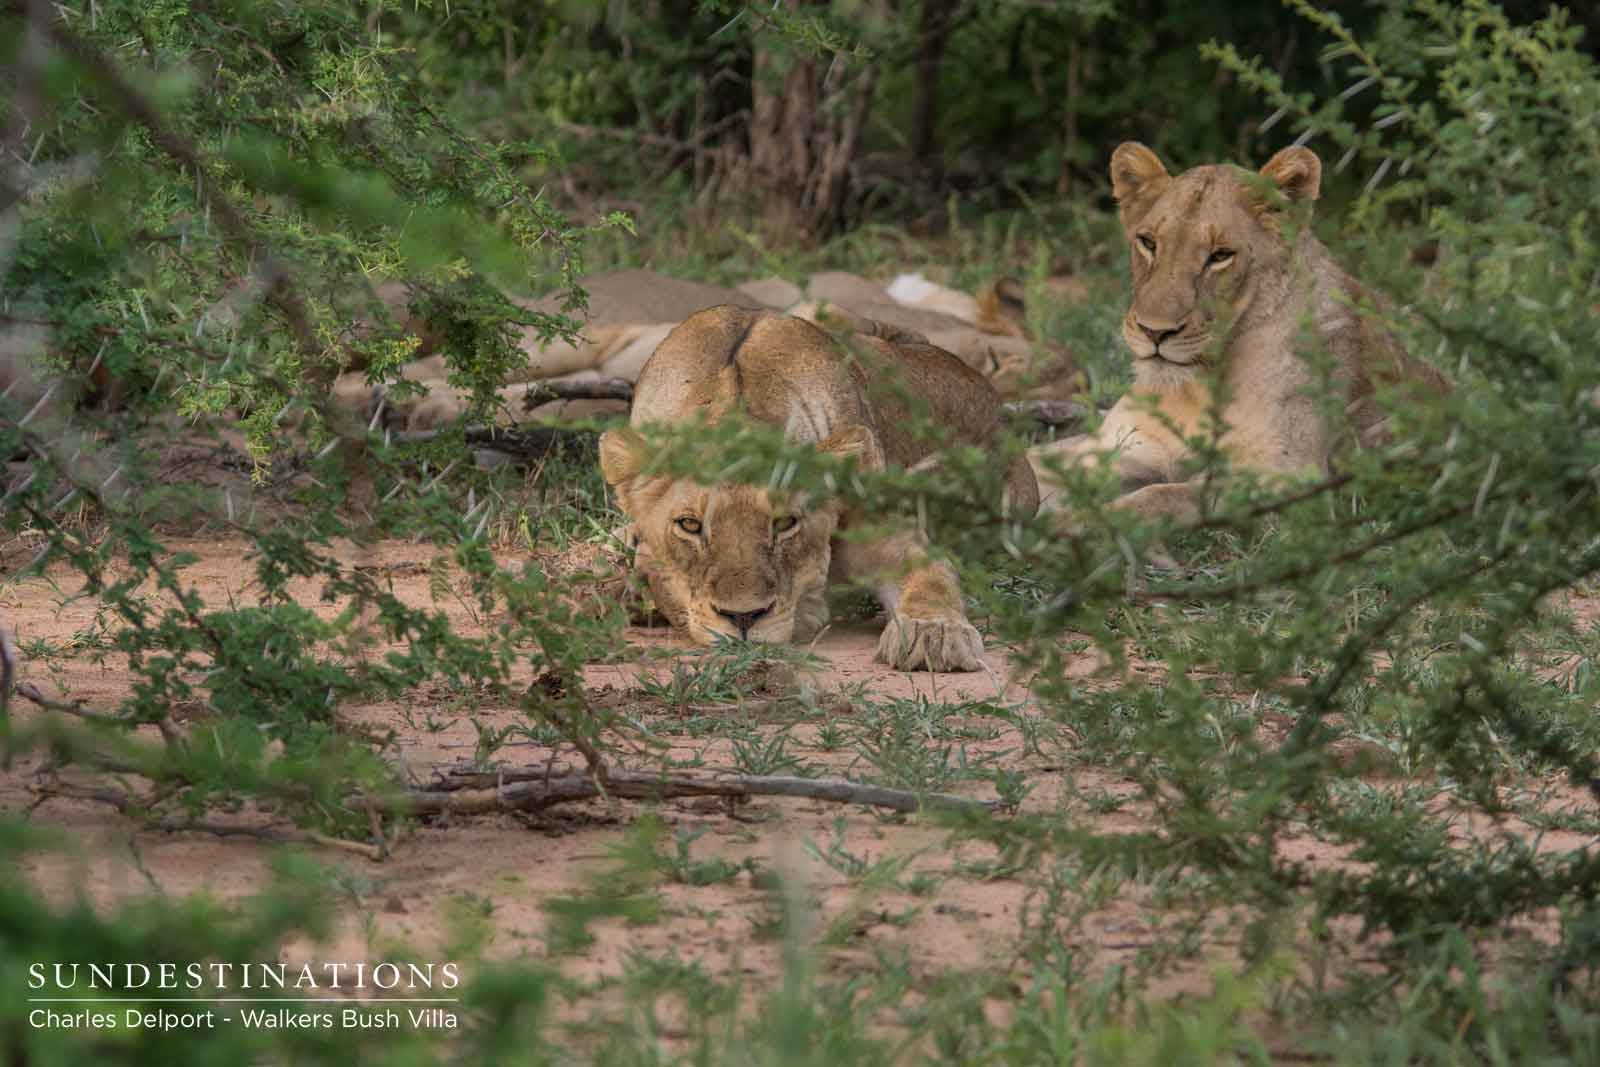 Timbavati Lions : Take a Walk(ers) on the Wild Side